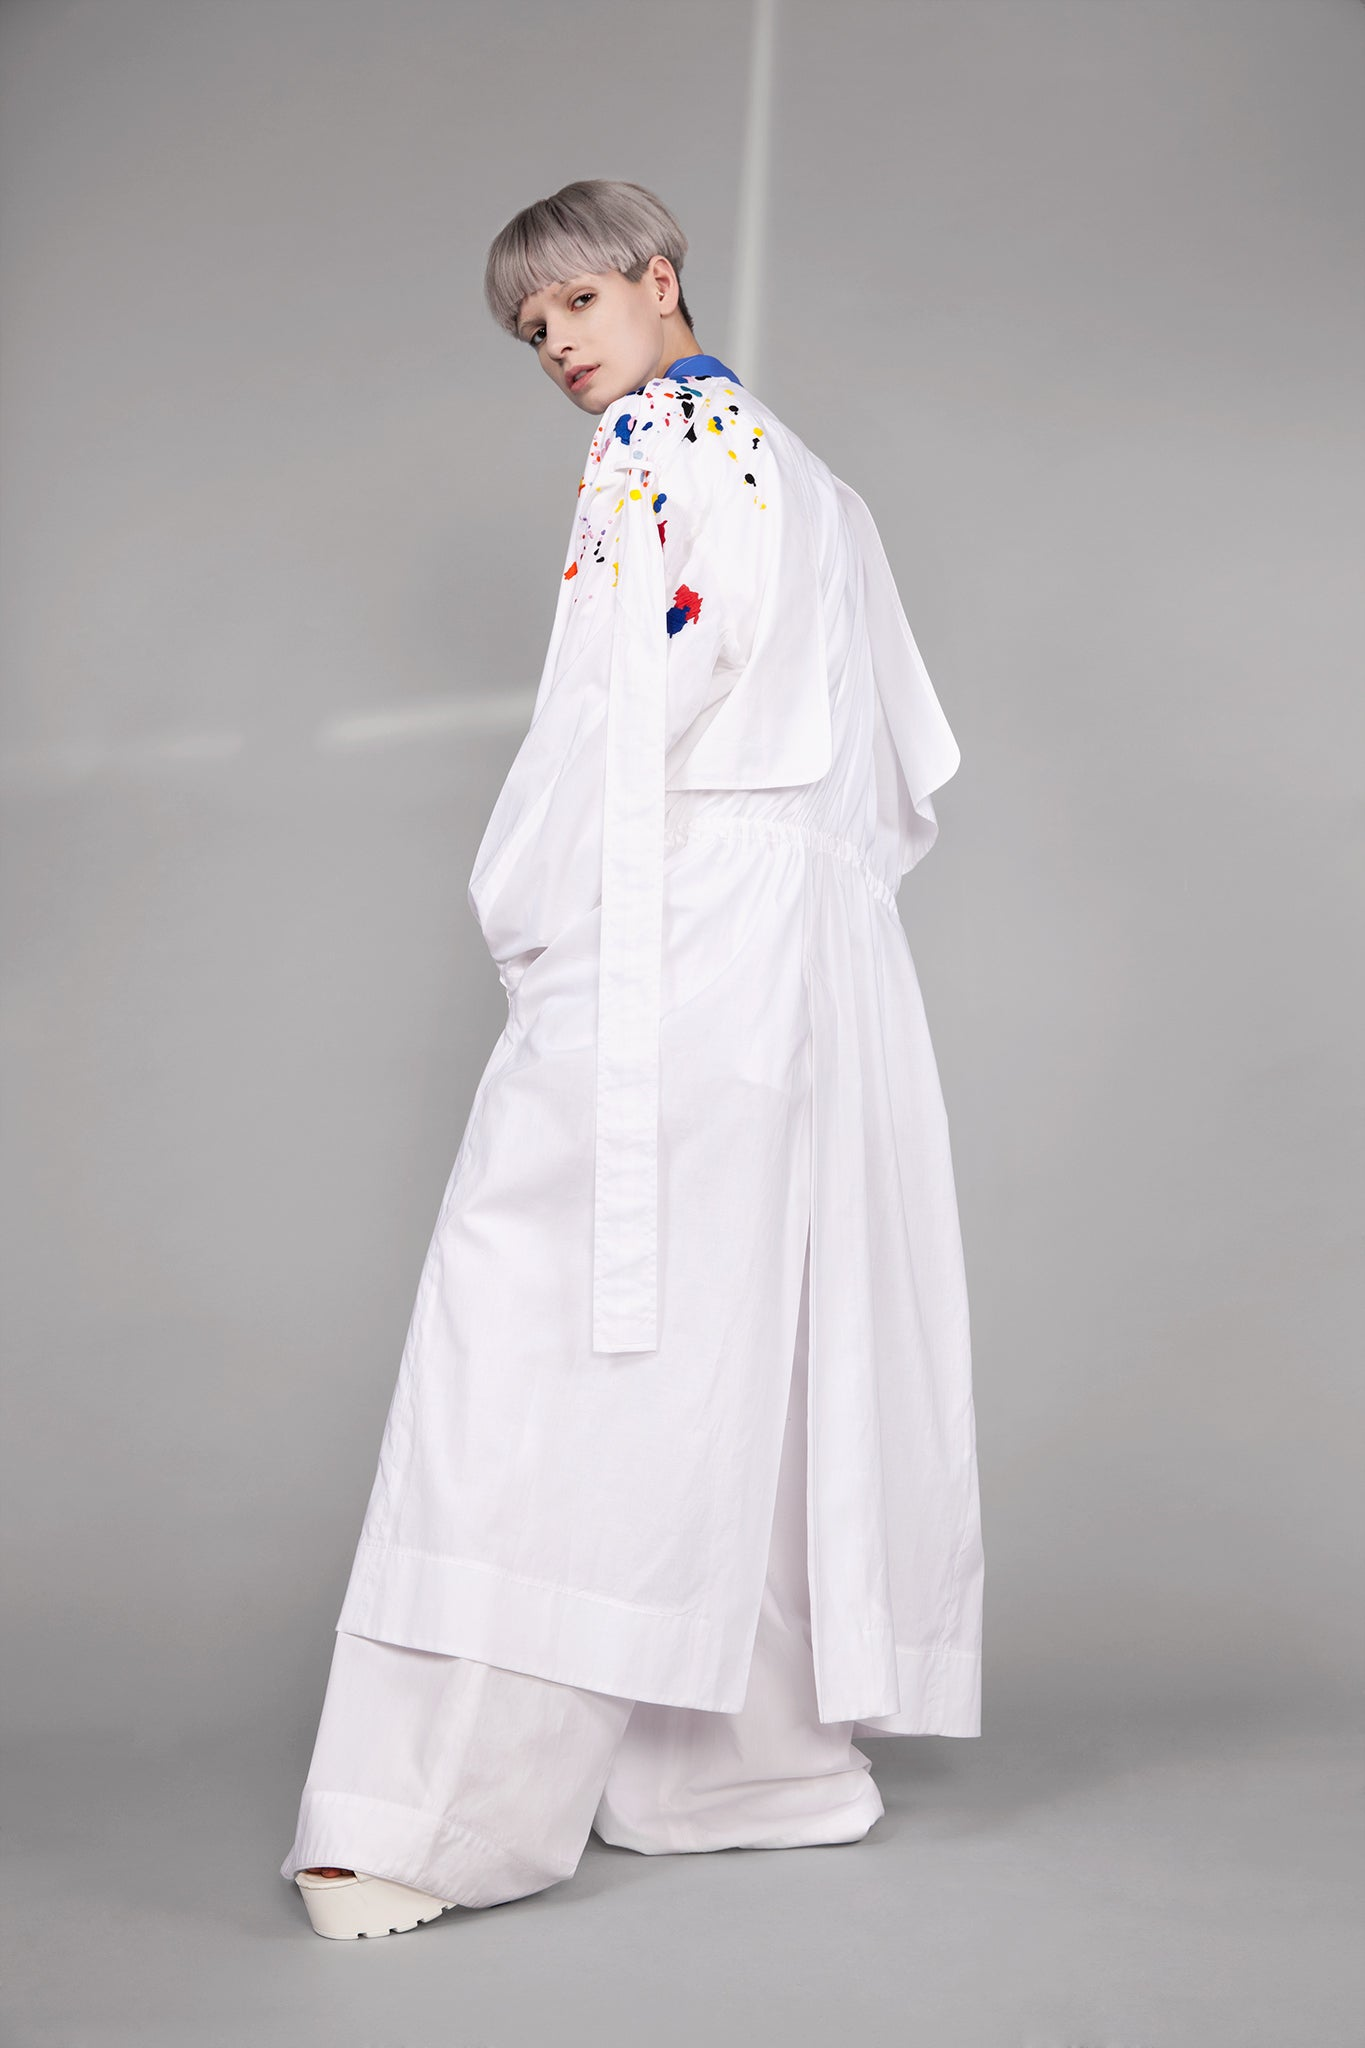 Colourful embroidered paint splashes on crisp white cotton 'Helios' trench coat from emerging brand CIMONE. Embellishments and overall look at echoed by Oscar de la Renta one year later in SS18 - be ahead of the trends and support new brands!